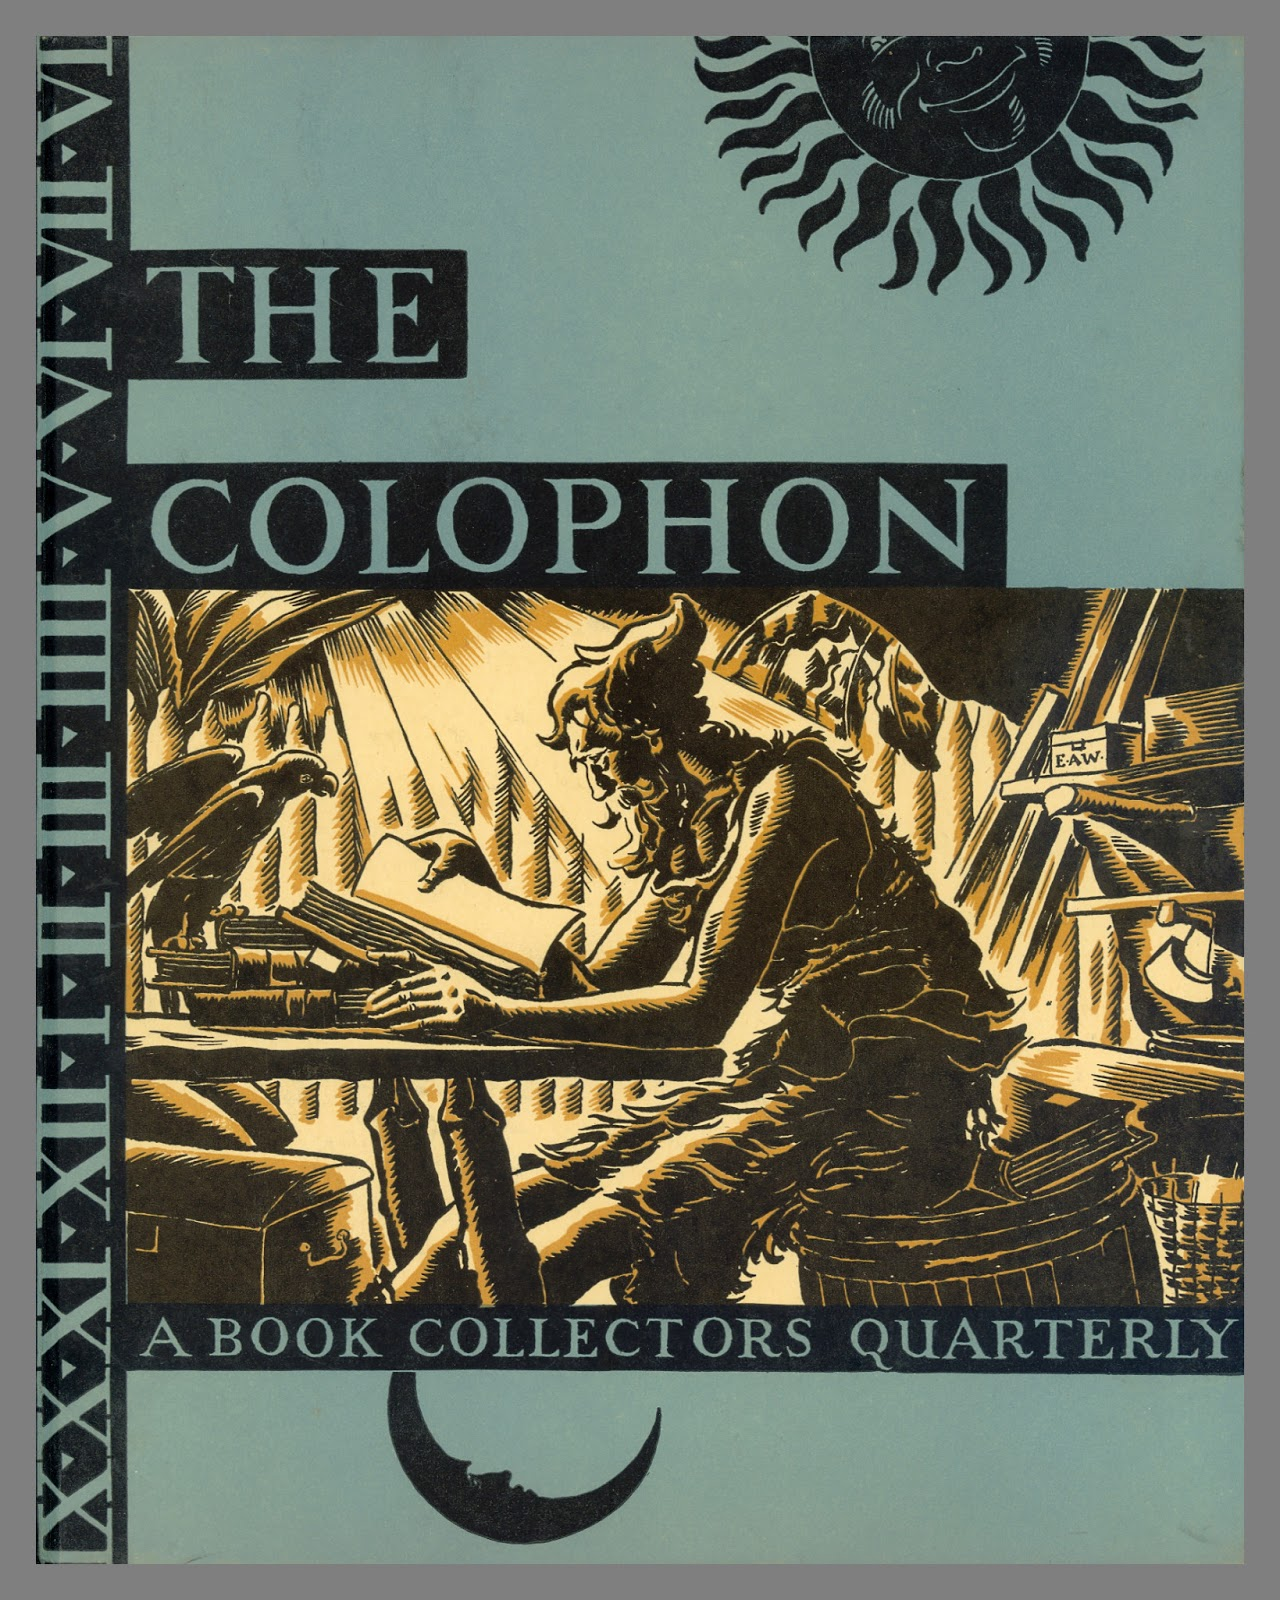 Category wednesday exhibition center for book arts this week id like to highlight one of the reference collections many journal titles the colophon ref1024 ref1025 and ref fandeluxe Image collections